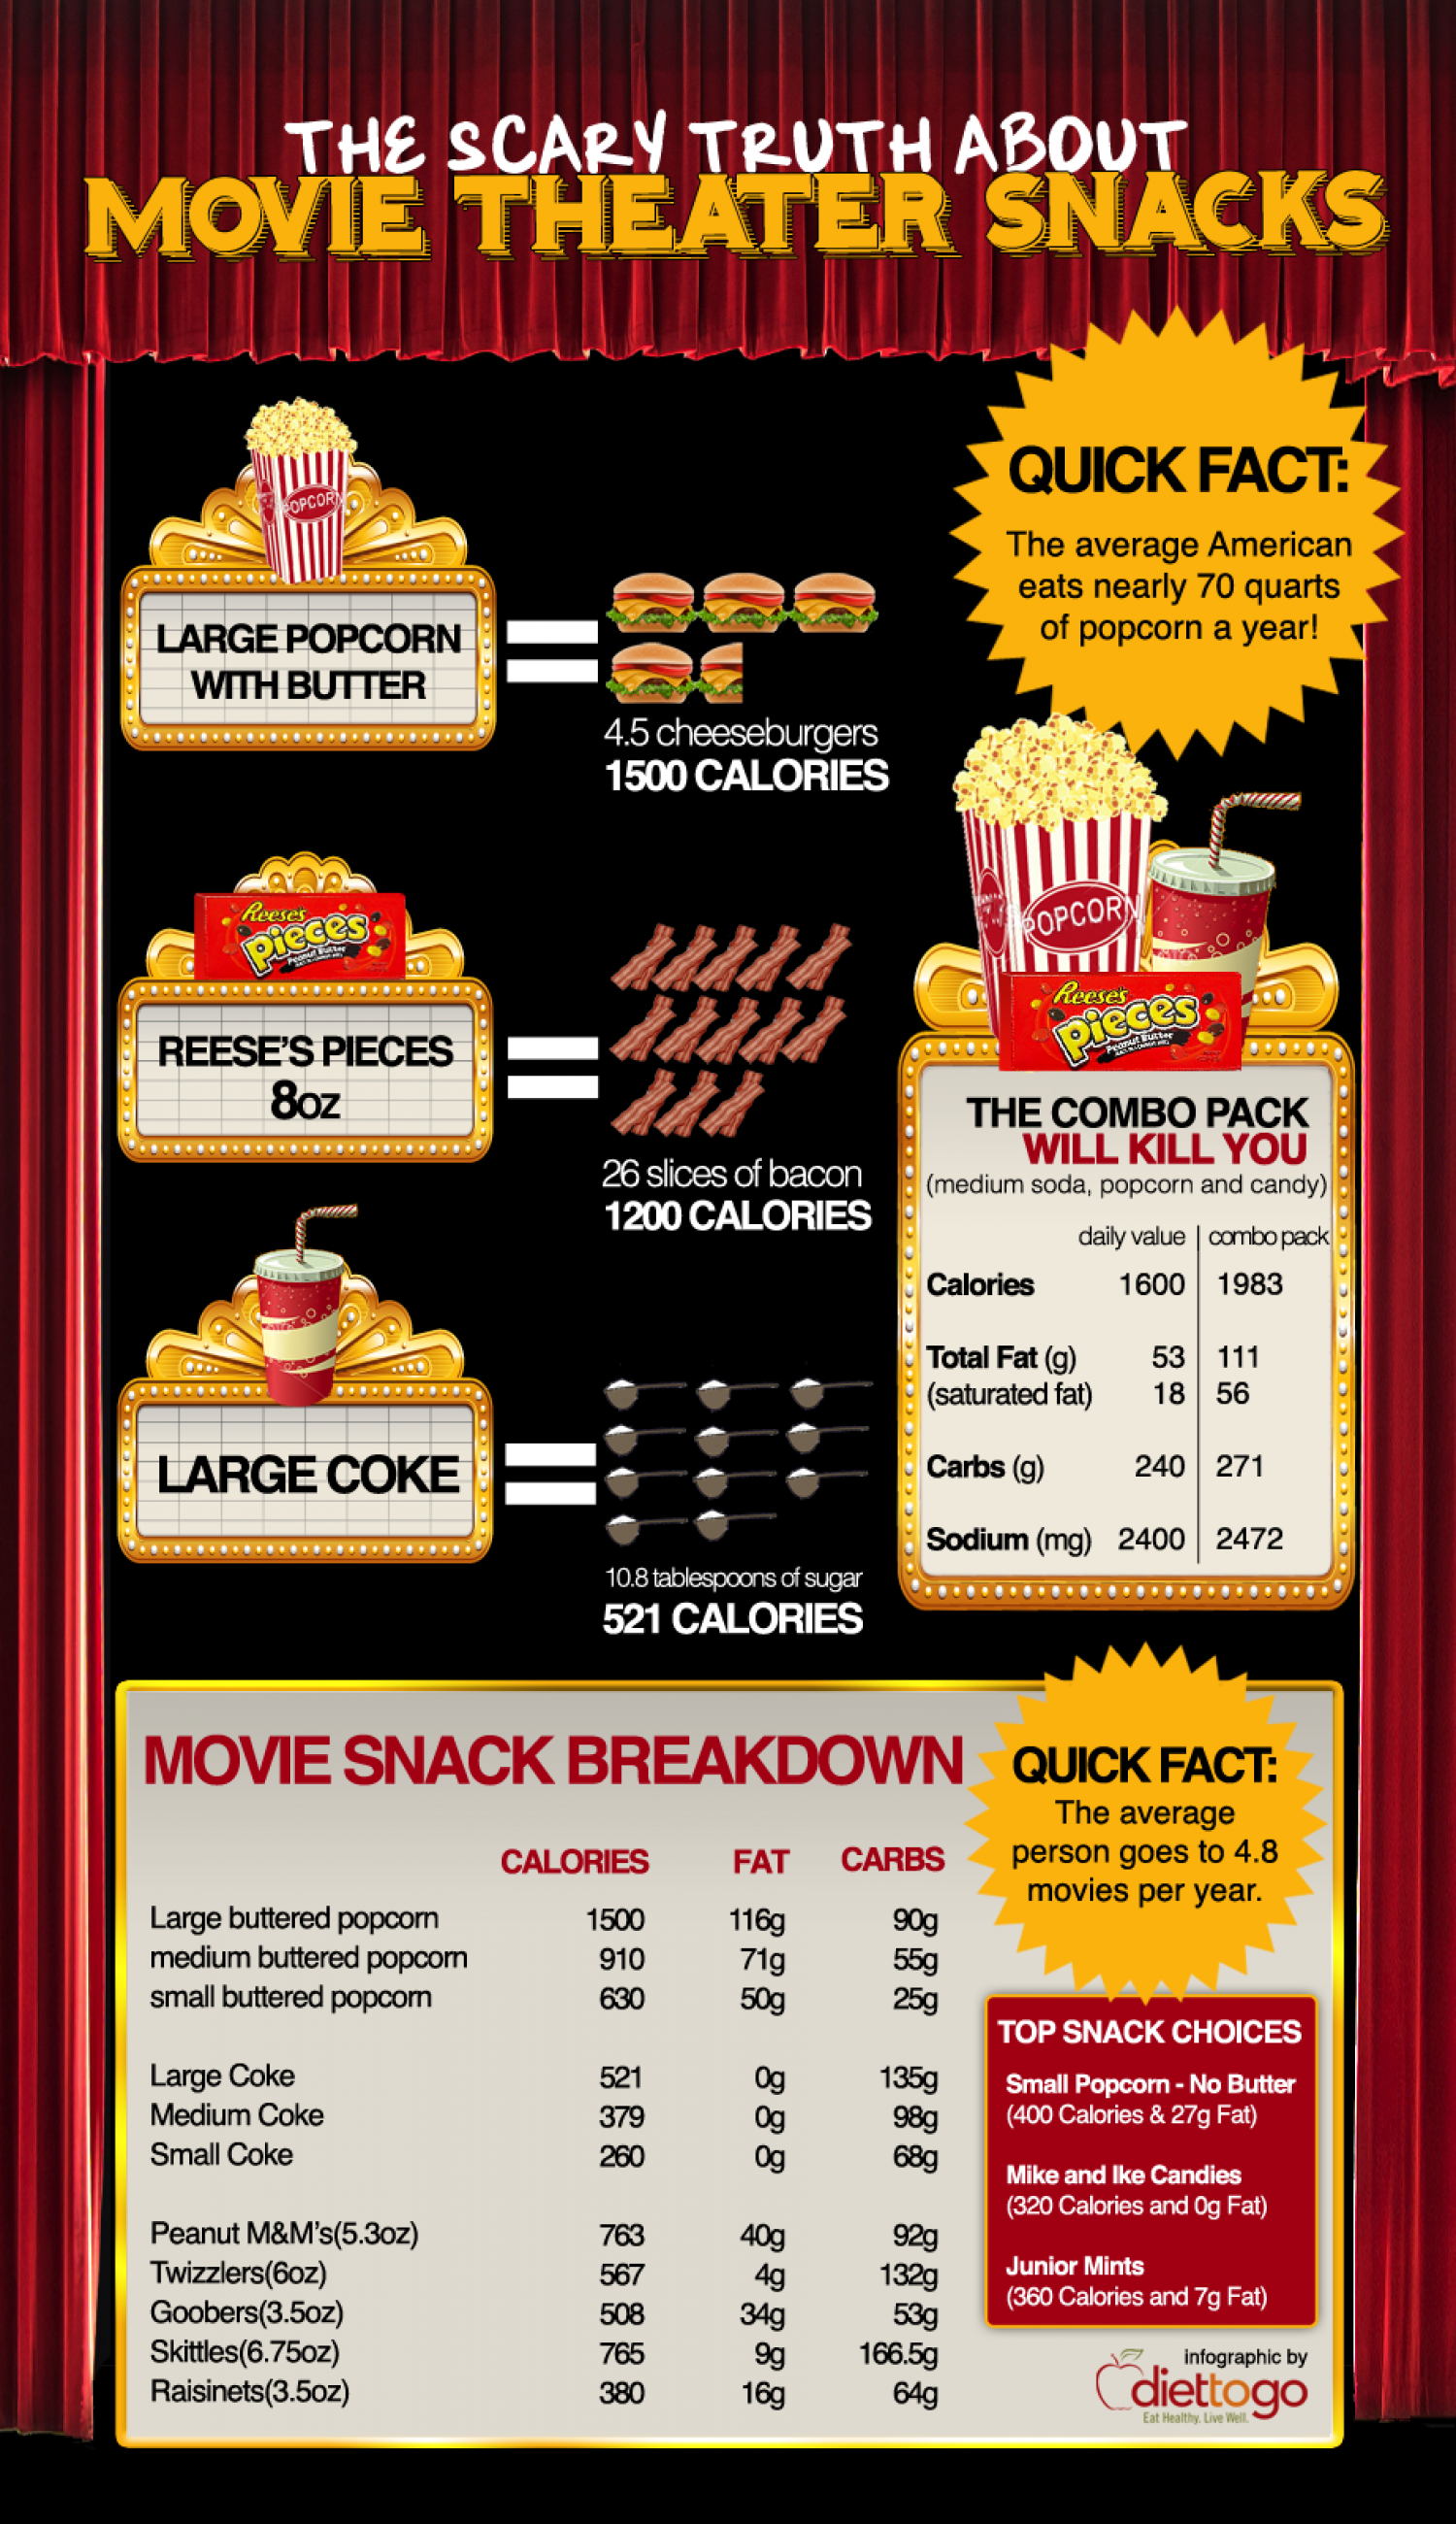 The Scary Truth About Movie Theater Snacks